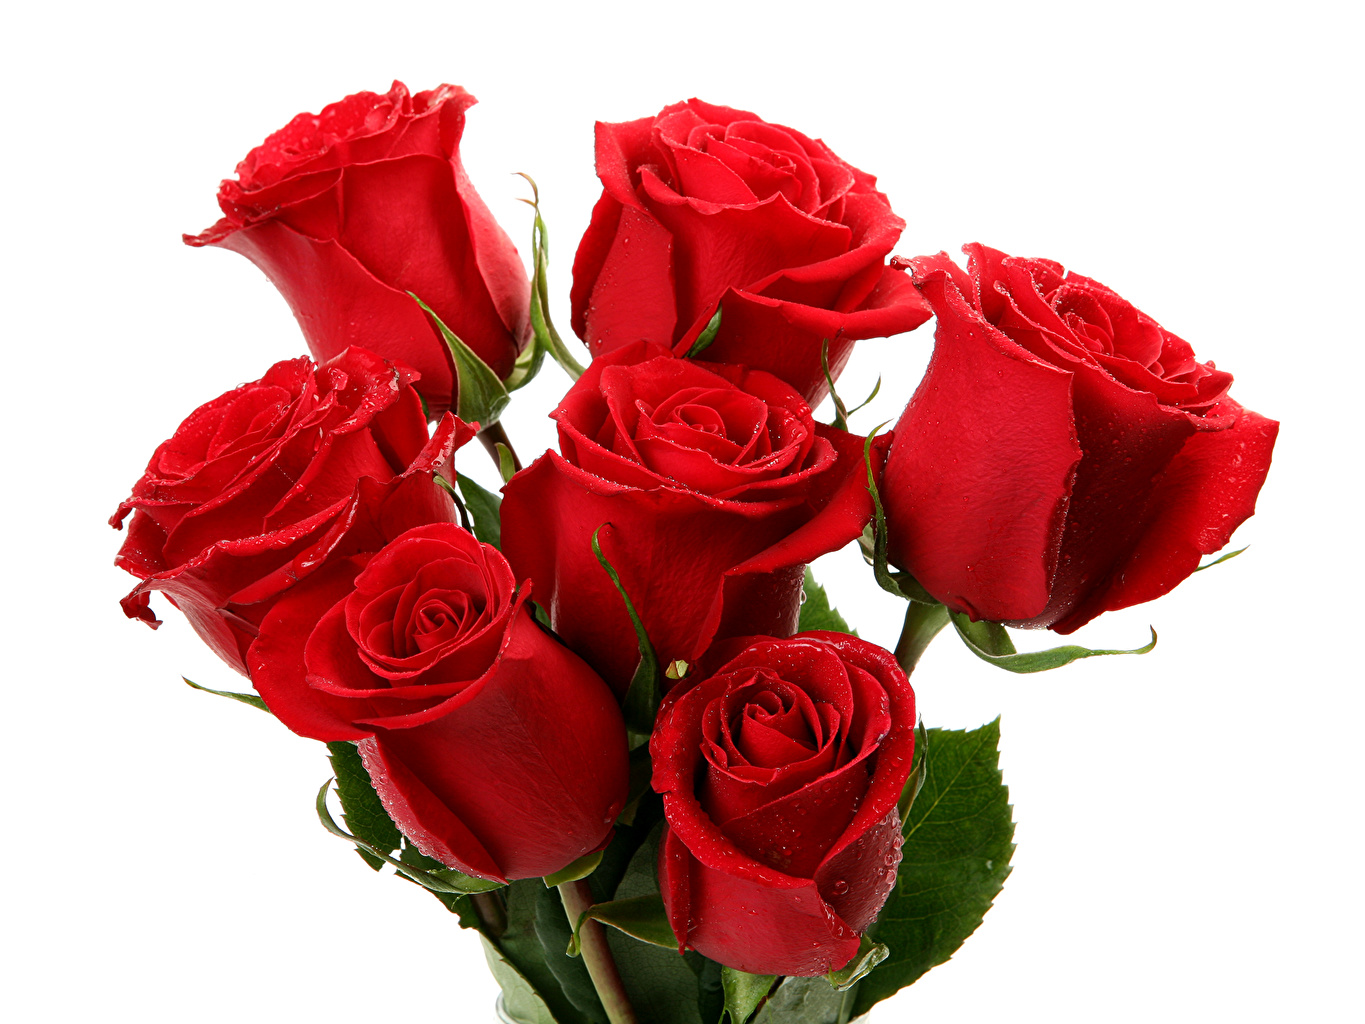 Wallpaper Red Roses Flowers White background